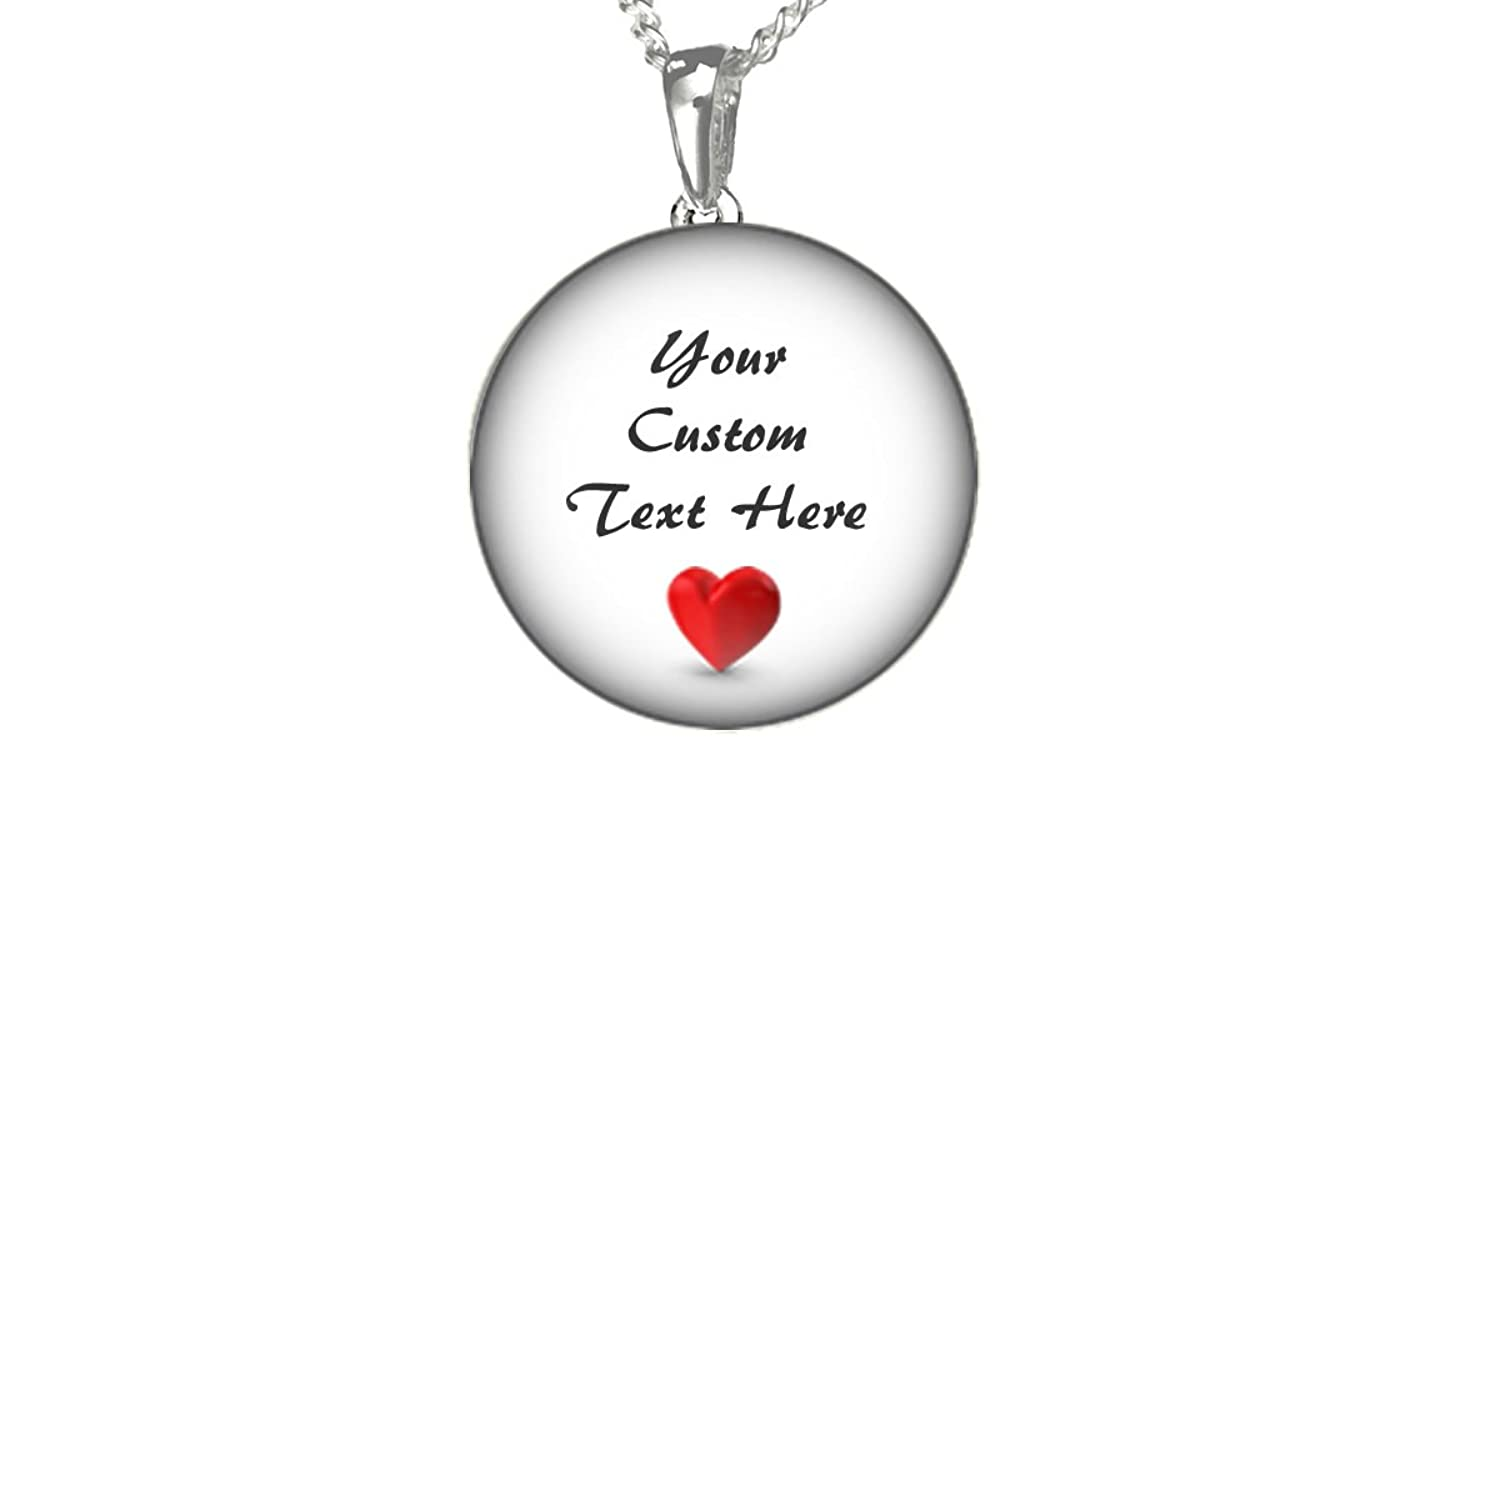 lockets jewelry laine shop memento thomas collection premium custom gifts personalized